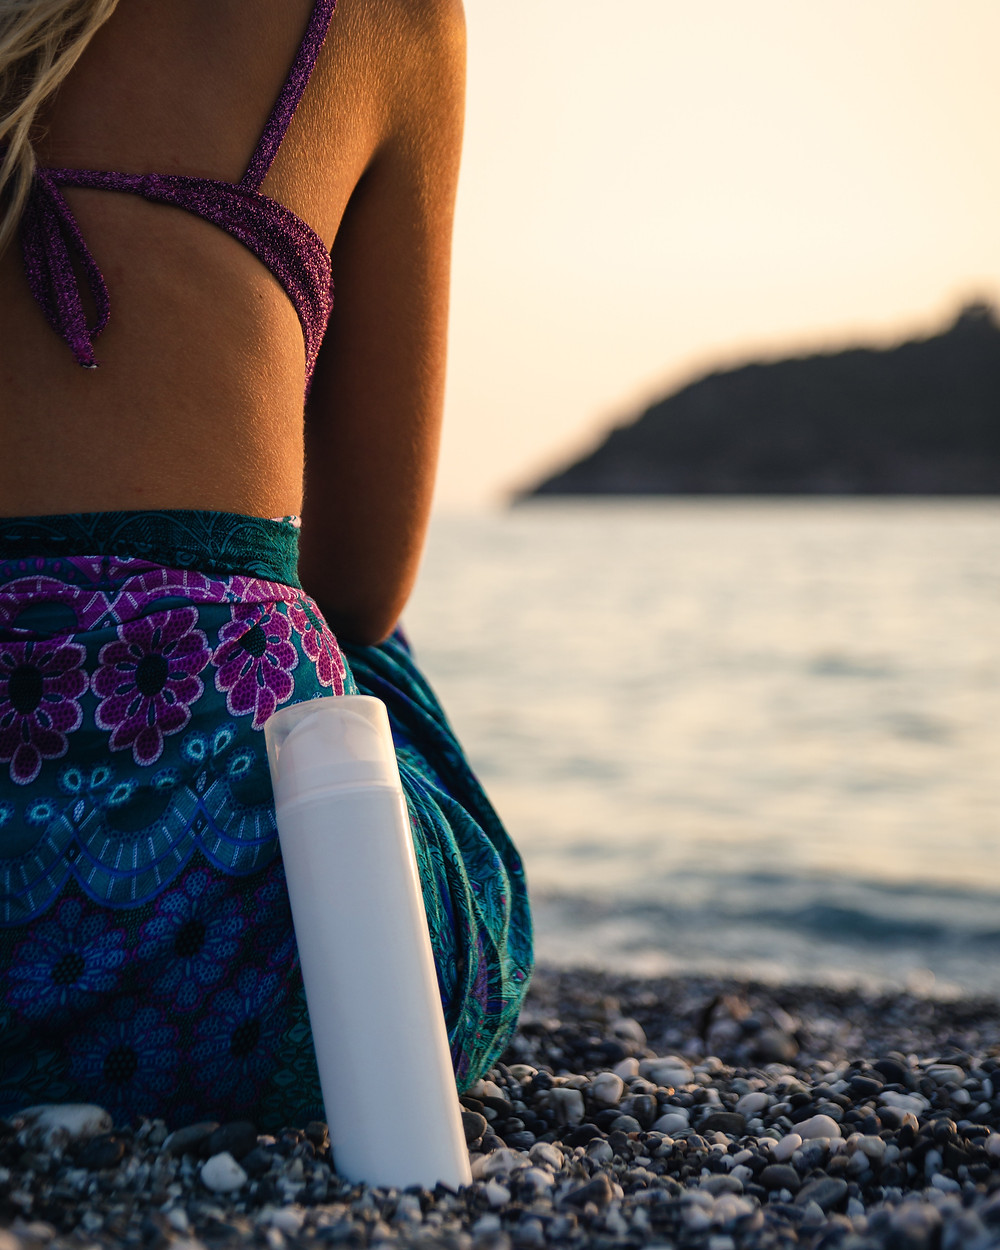 Dr. Kate Henry Sunscreen and Antioxidants Article